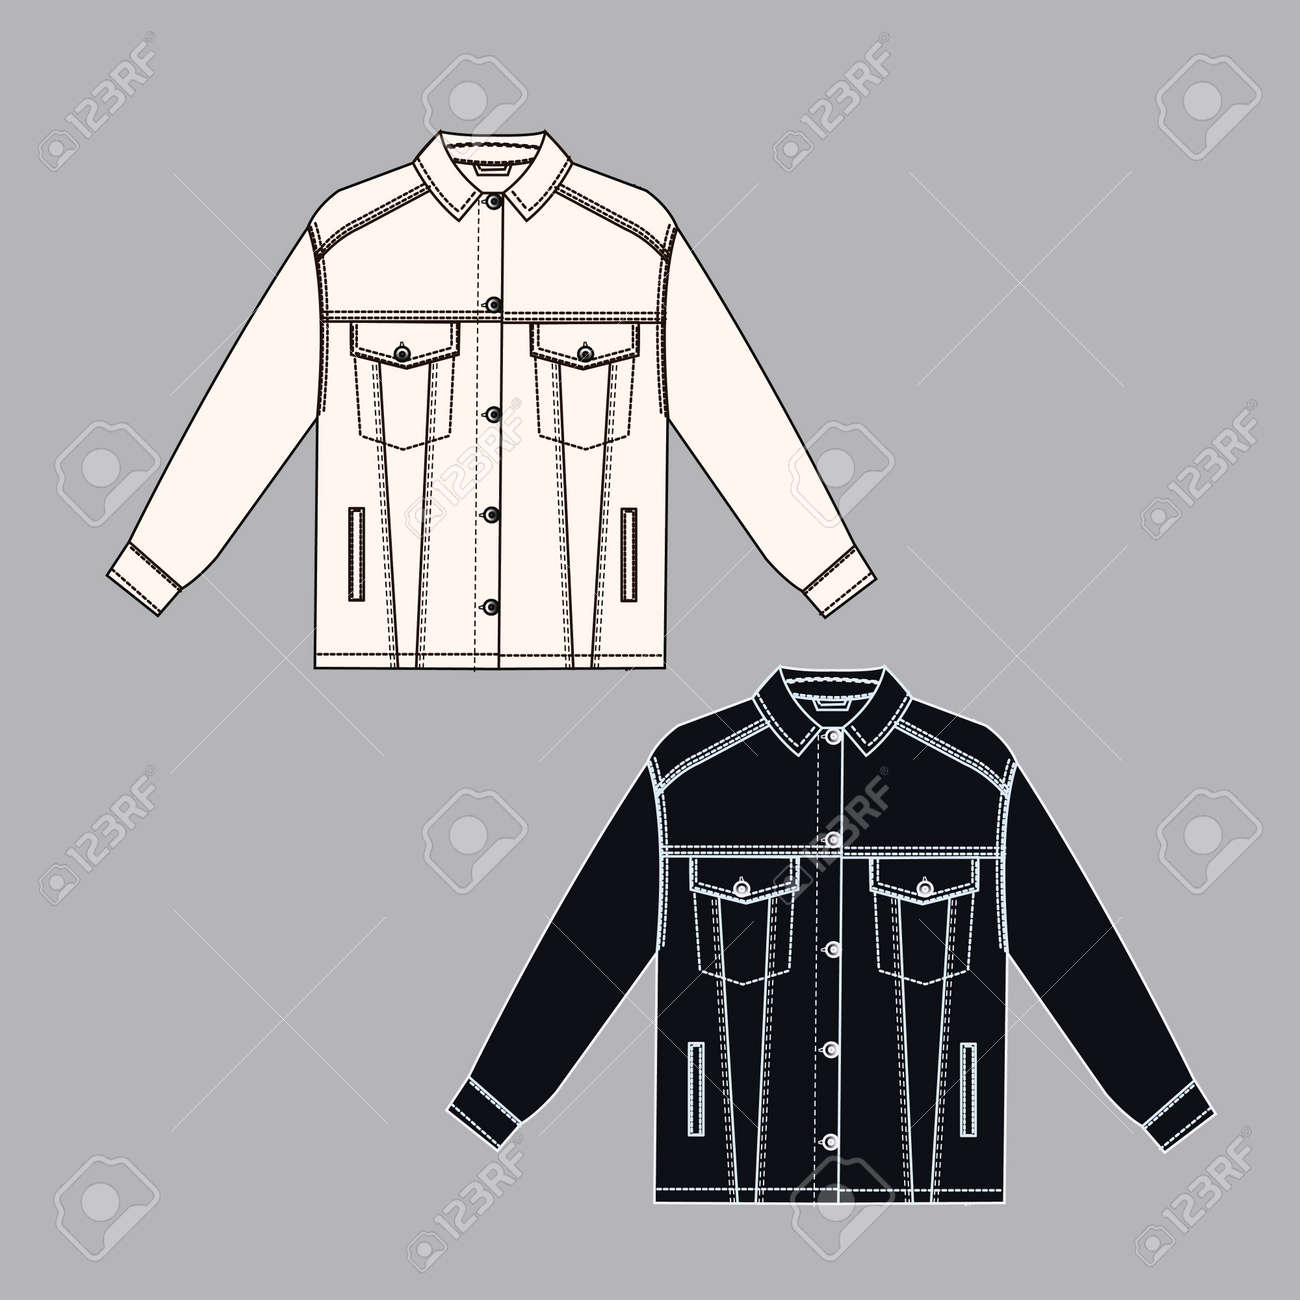 Female jeans jacket technical sketch white and black colors. Cloth technical sketch. outline fashion sketch - 154727947